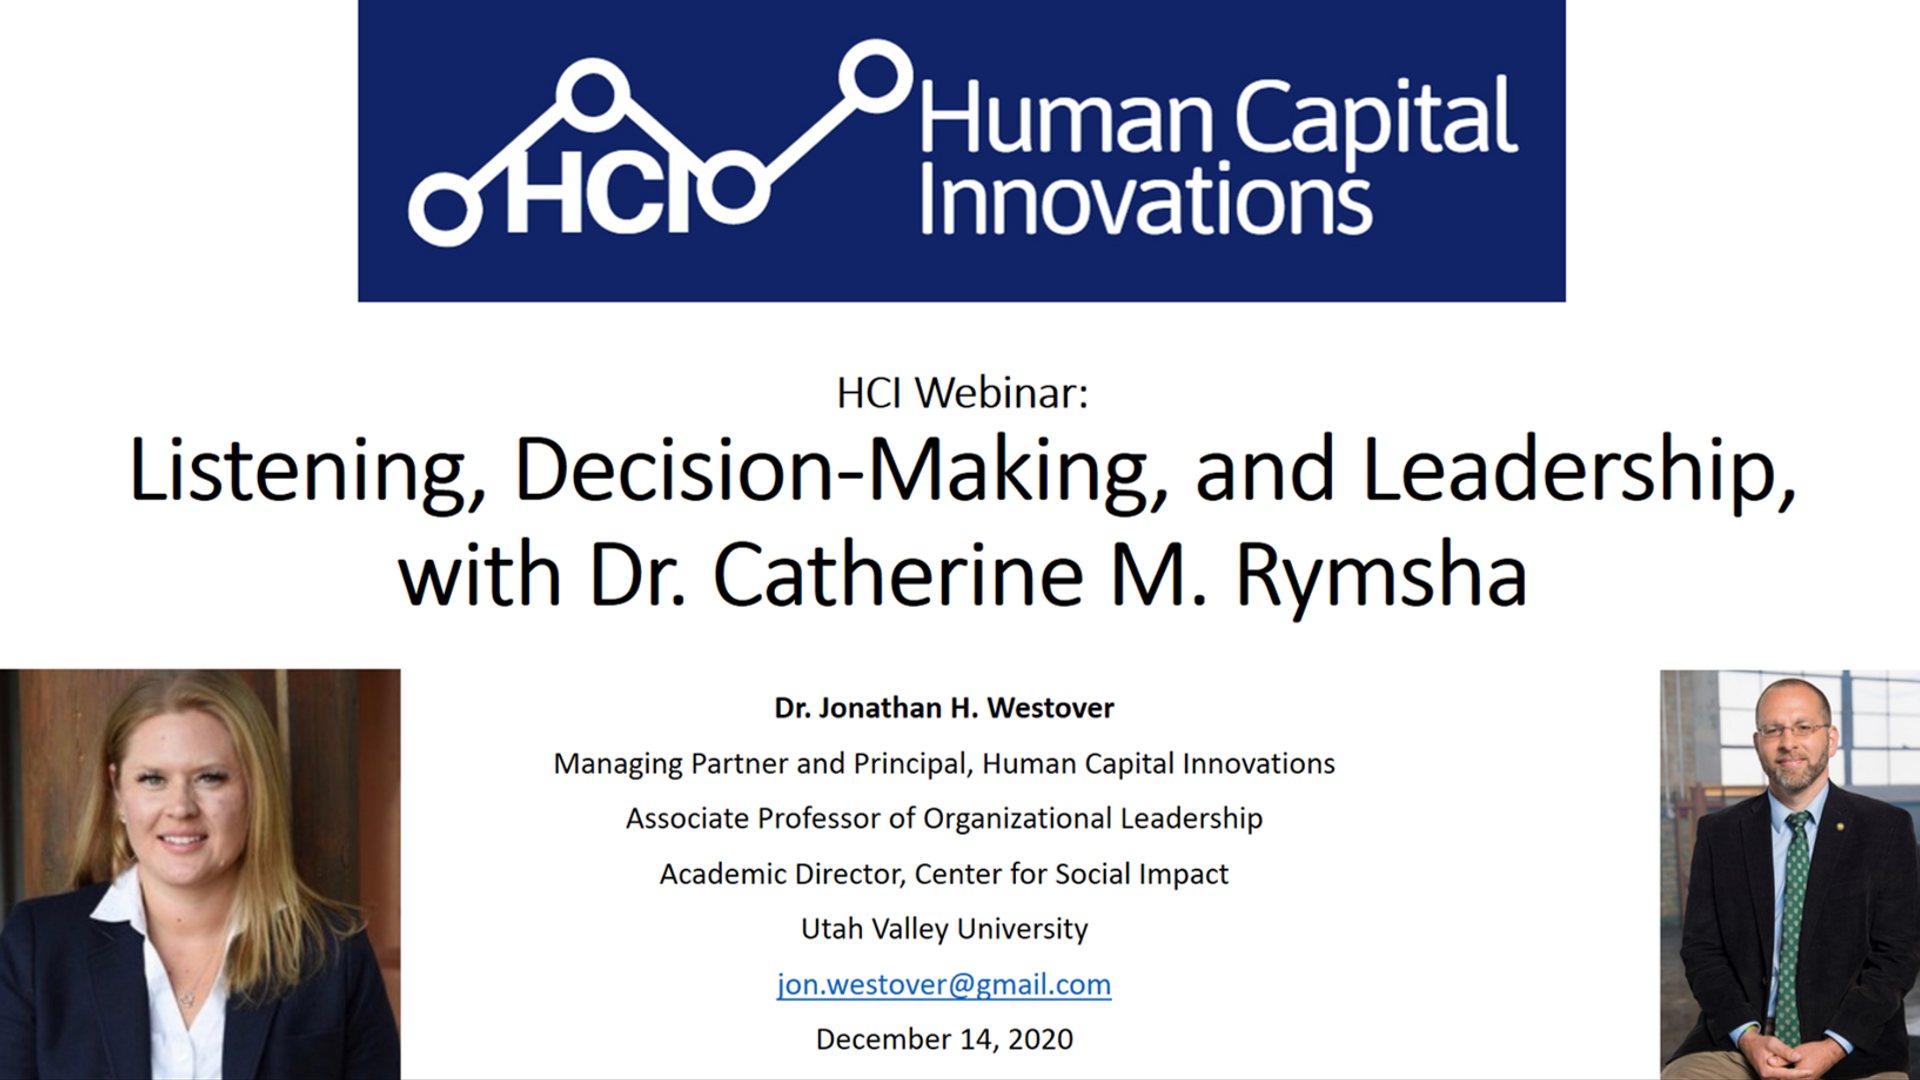 Listening, Decision-Making, and Leadership